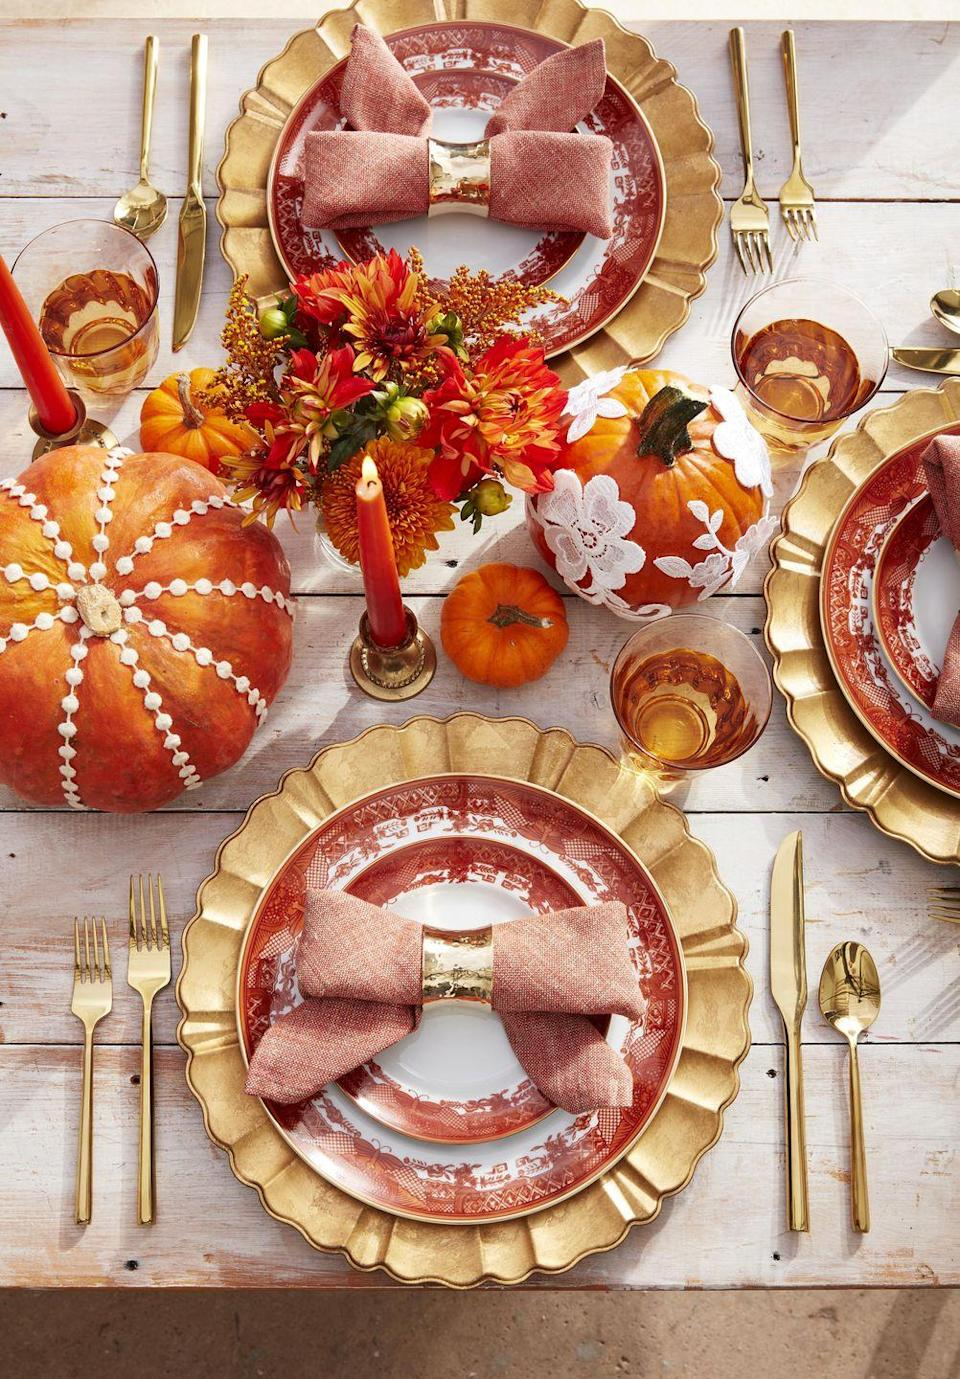 """<p>Beautiful tones of orange and gold make for an elegant Thanksgiving table. And don't forget to give that napkin extra love by forming then into a bow shapes and slipping a gold napkin ring over the center.</p><p><a class=""""link rapid-noclick-resp"""" href=""""https://www.amazon.com/dp/B07Q562PG2/ref=twister_B07Q34NV9Y?tag=syn-yahoo-20&ascsubtag=%5Bartid%7C10050.g.1371%5Bsrc%7Cyahoo-us"""" rel=""""nofollow noopener"""" target=""""_blank"""" data-ylk=""""slk:SHOP NAPKINS"""">SHOP NAPKINS</a></p>"""